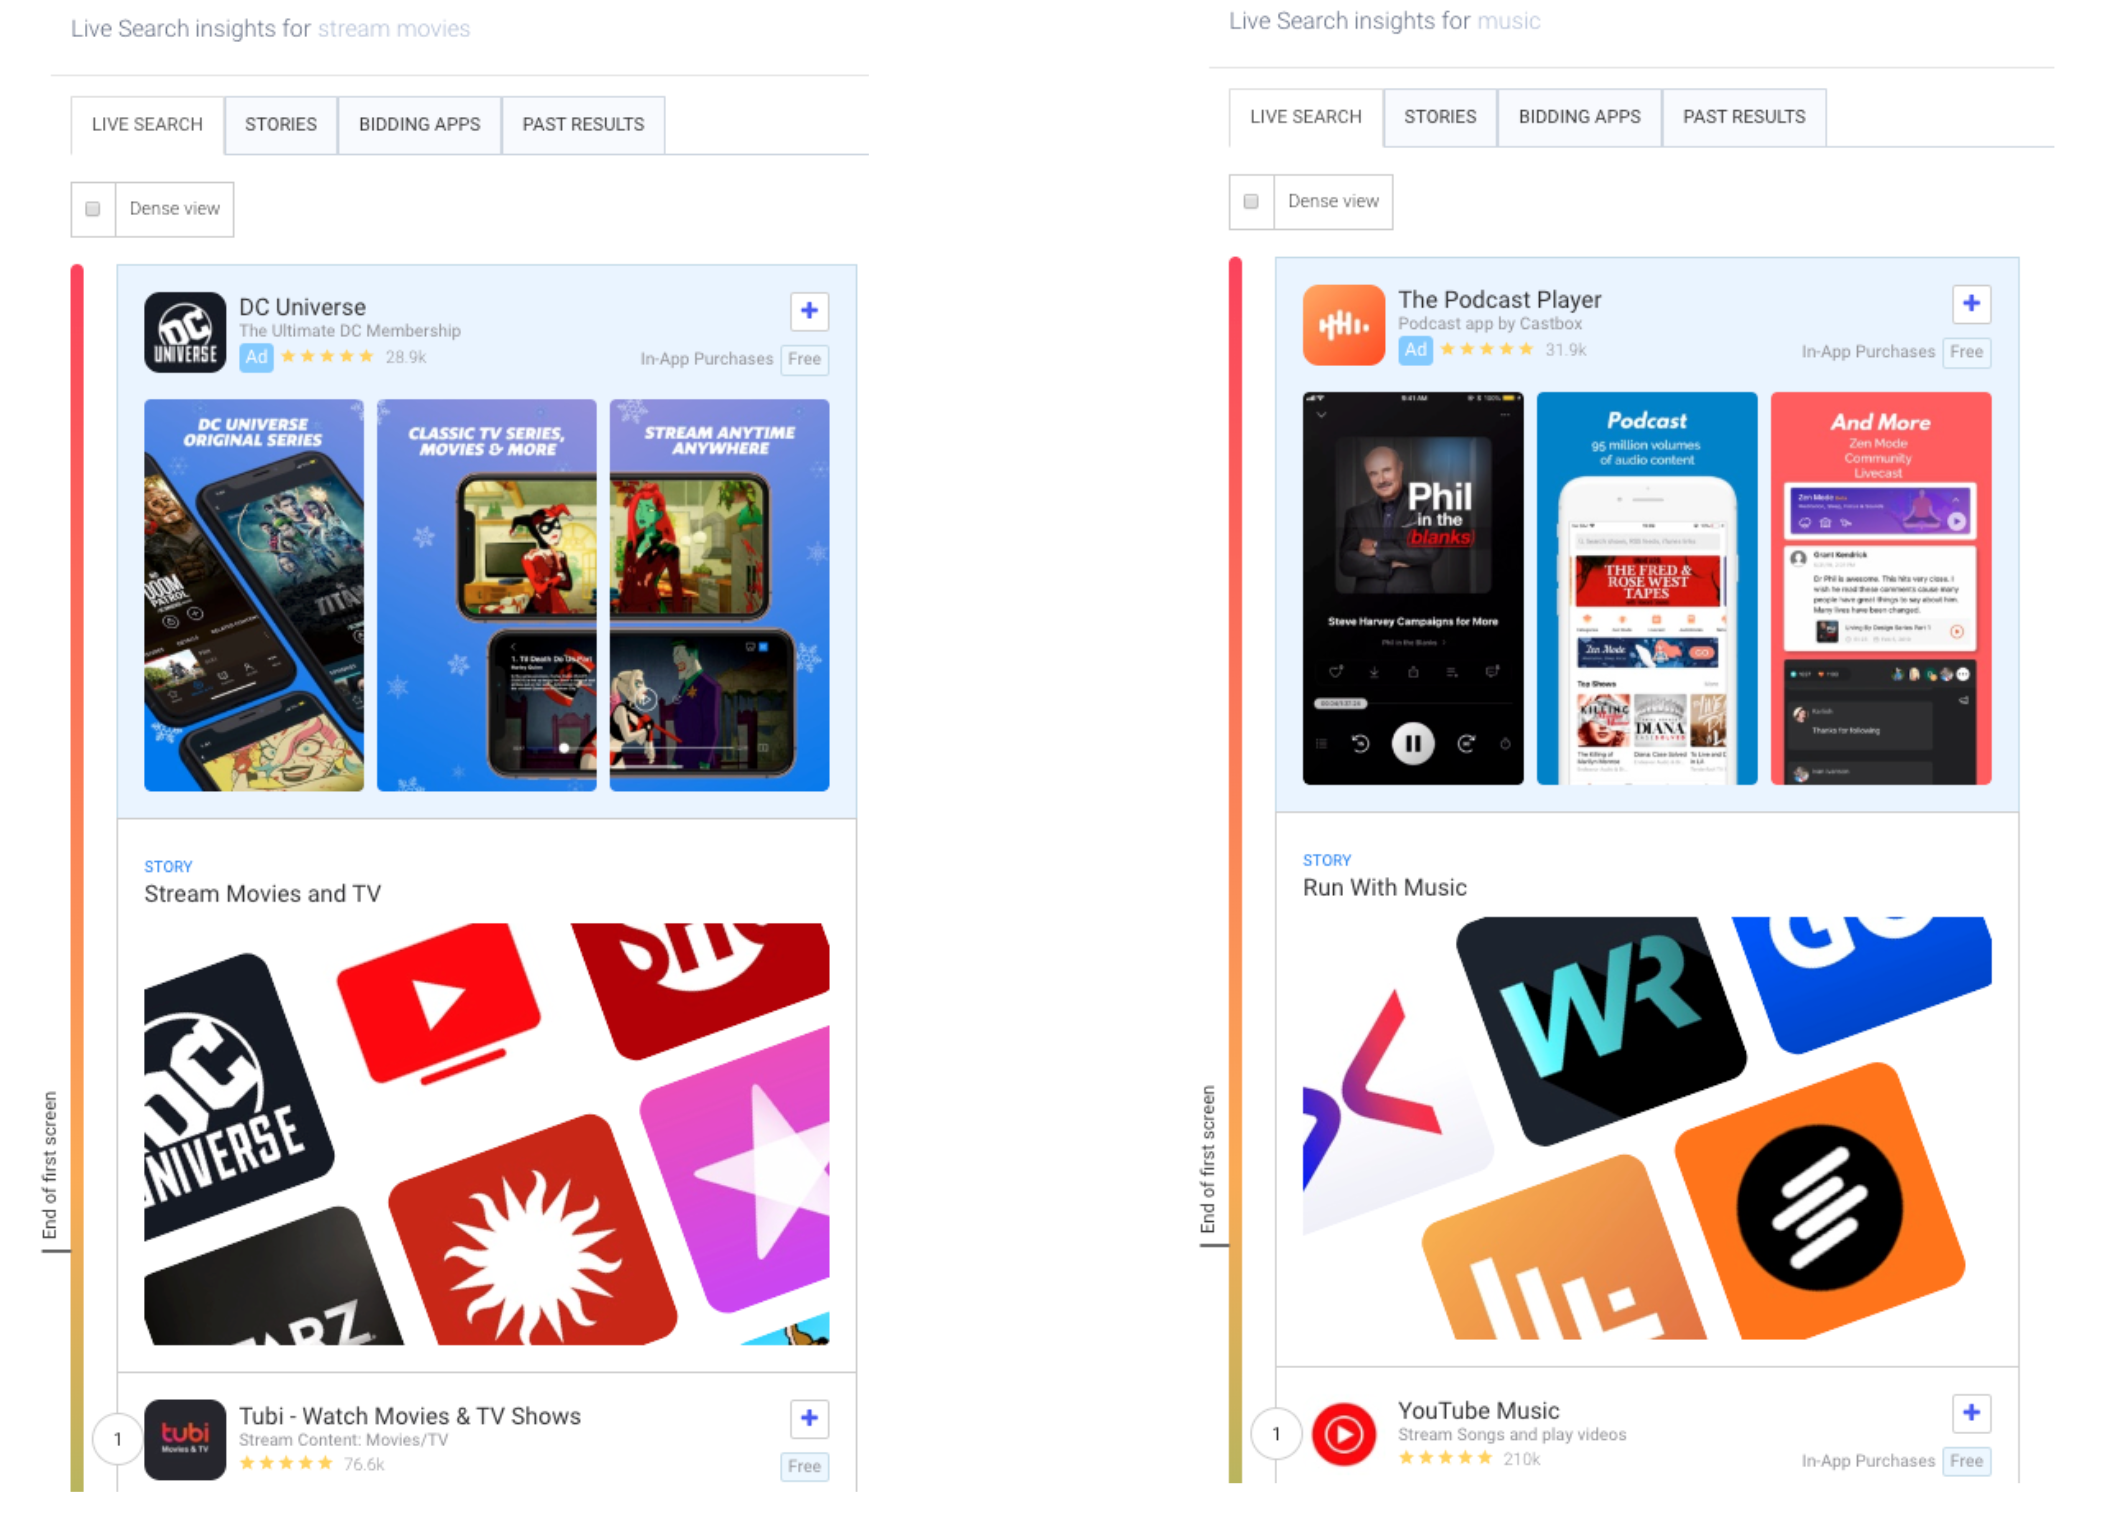 """When searching for """"stream movies"""" or for """"music"""", an Apple Search Ad and a story appear first in the Apple App Store search results, hiding the first organic result from the first screen."""